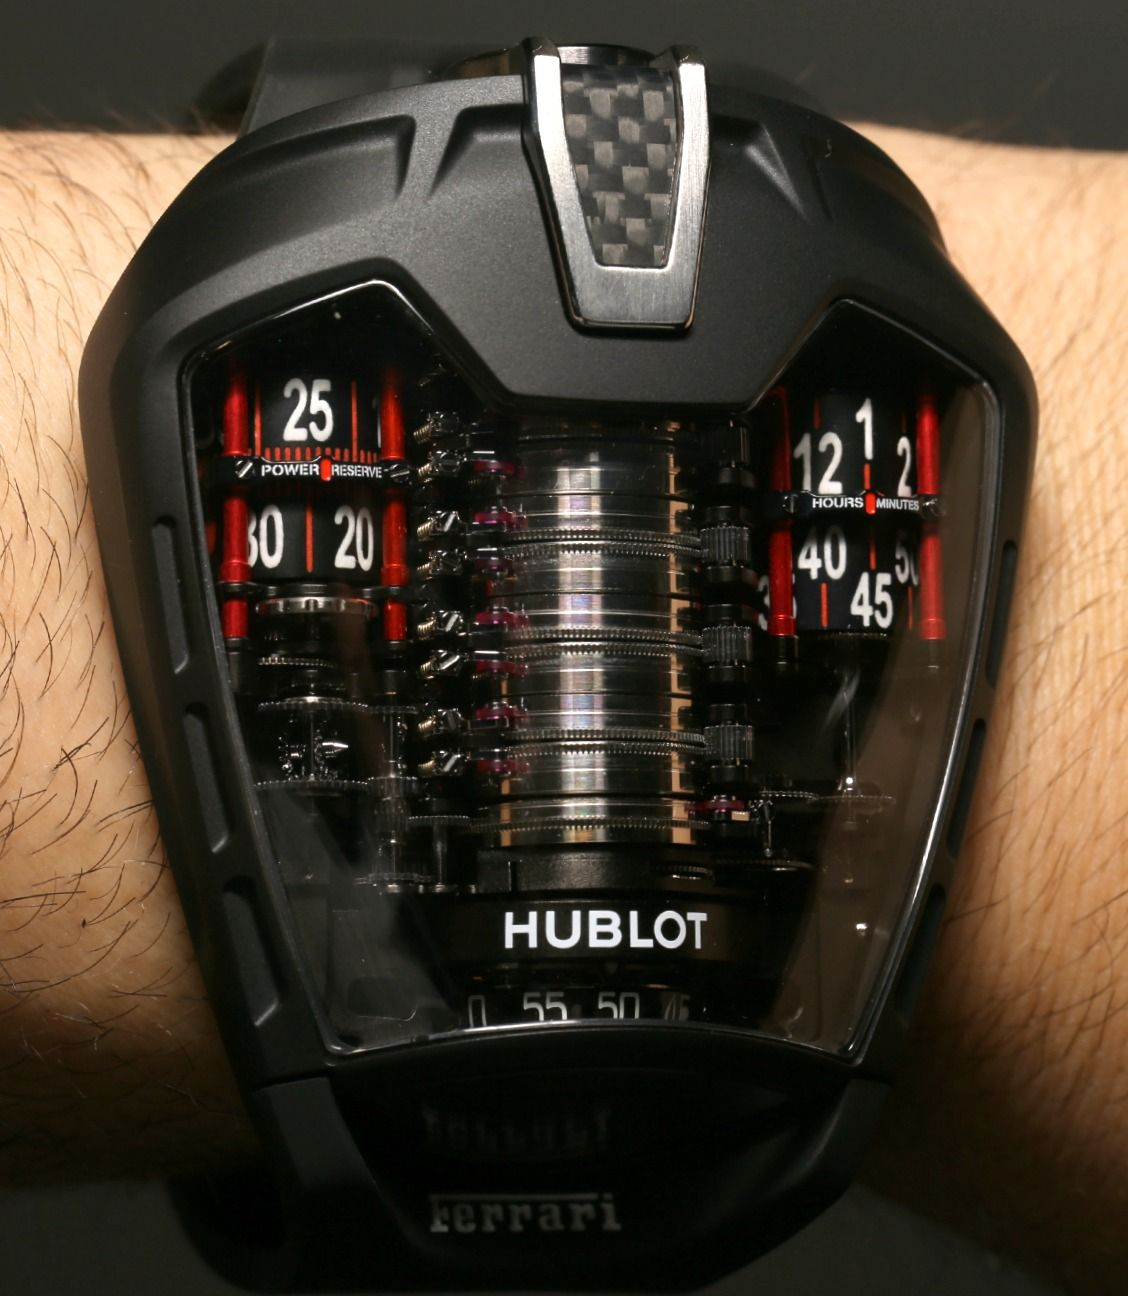 Hublot Mp 05 Laferrari Watch With Power For 50 Days Ablogtowatch Hublot Fancy Watches Luxury Watches